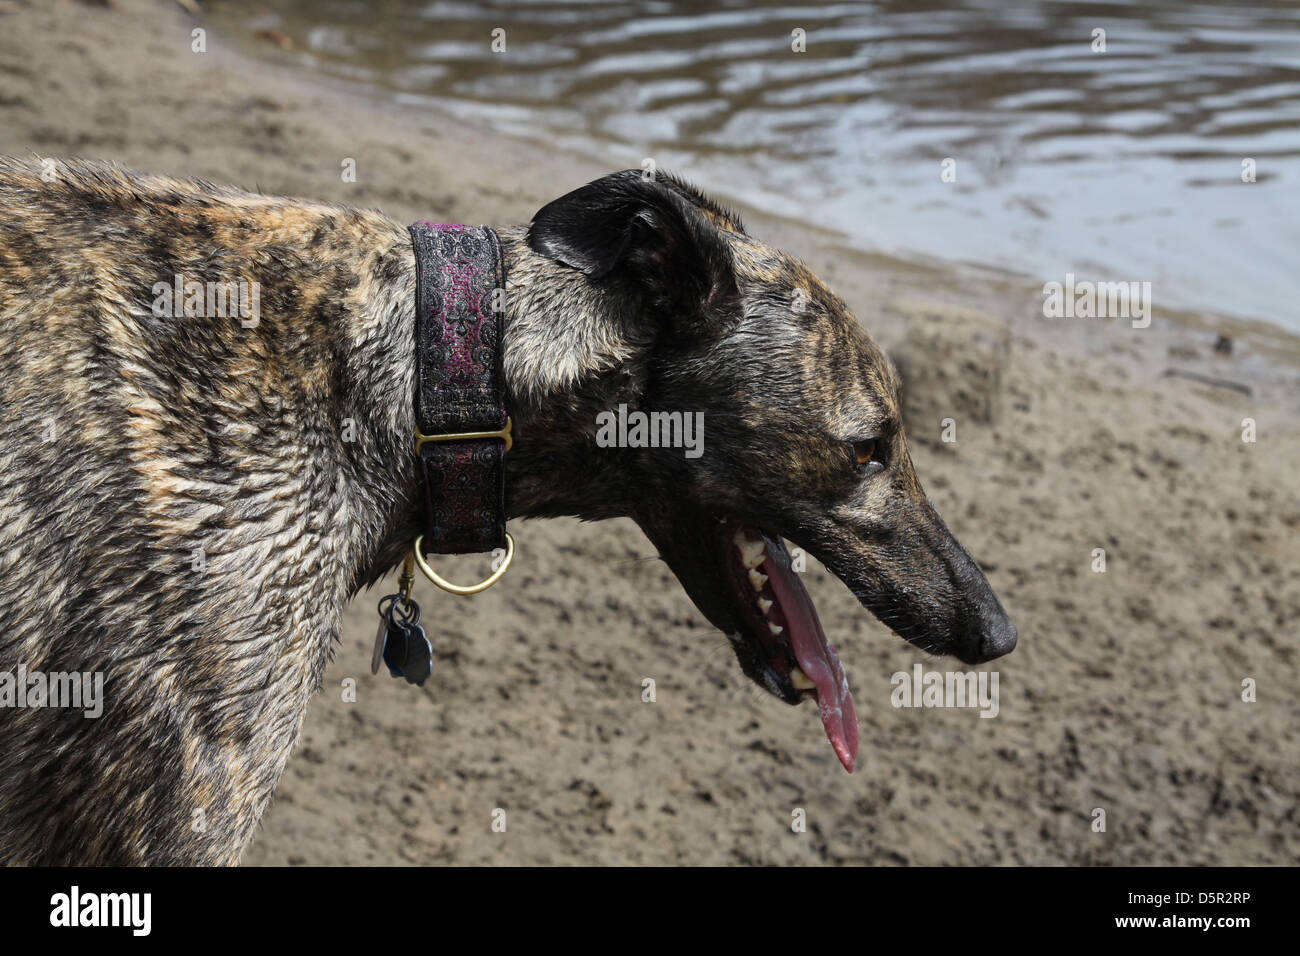 A wet, panting dog standing on a river bank. - Stock Image